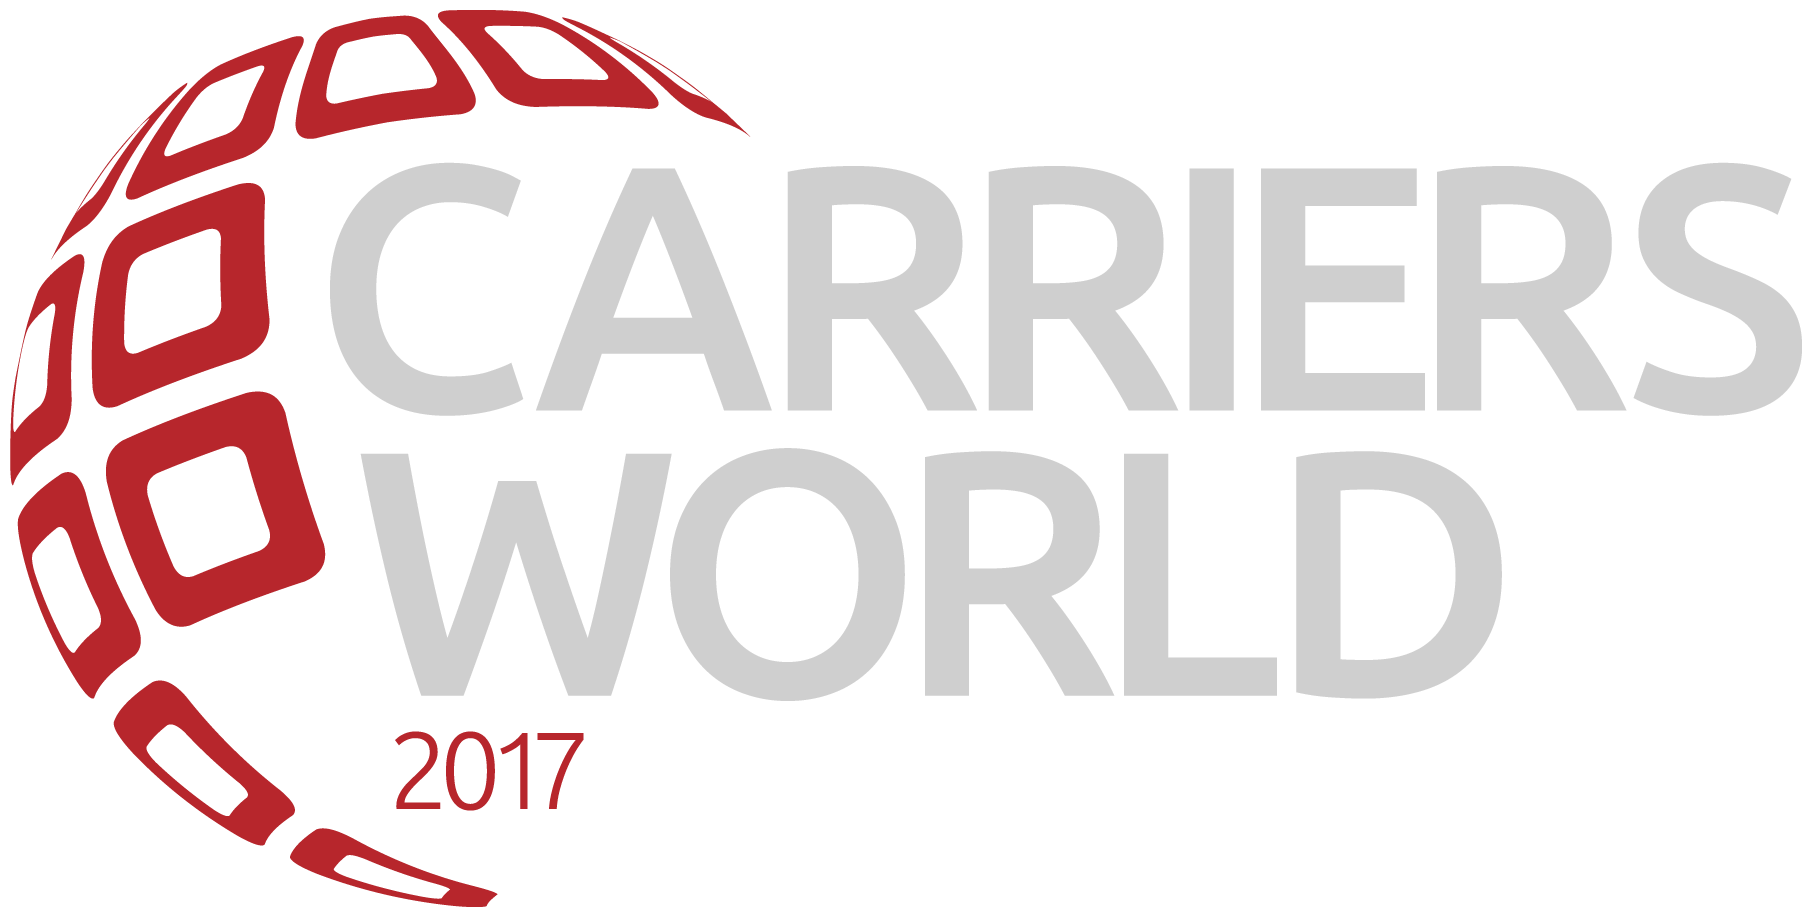 Carriers World 2017 logo